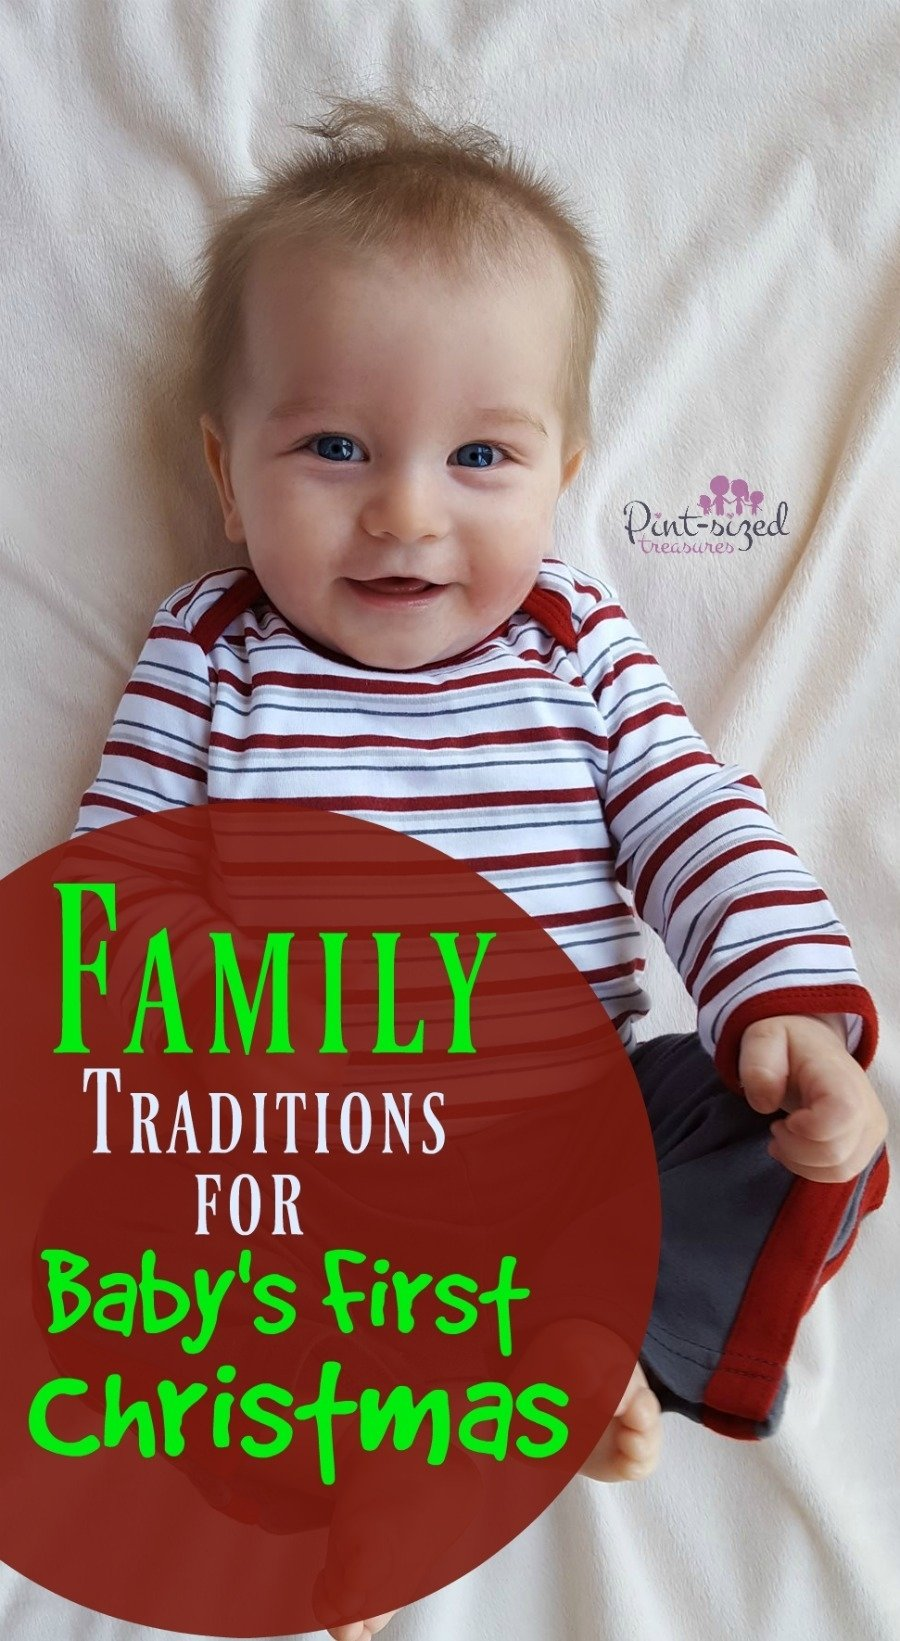 10 Gorgeous Christmas Picture Ideas For Babies family traditions for your babys first christmas c2b7 pint sized treasures 2 2020